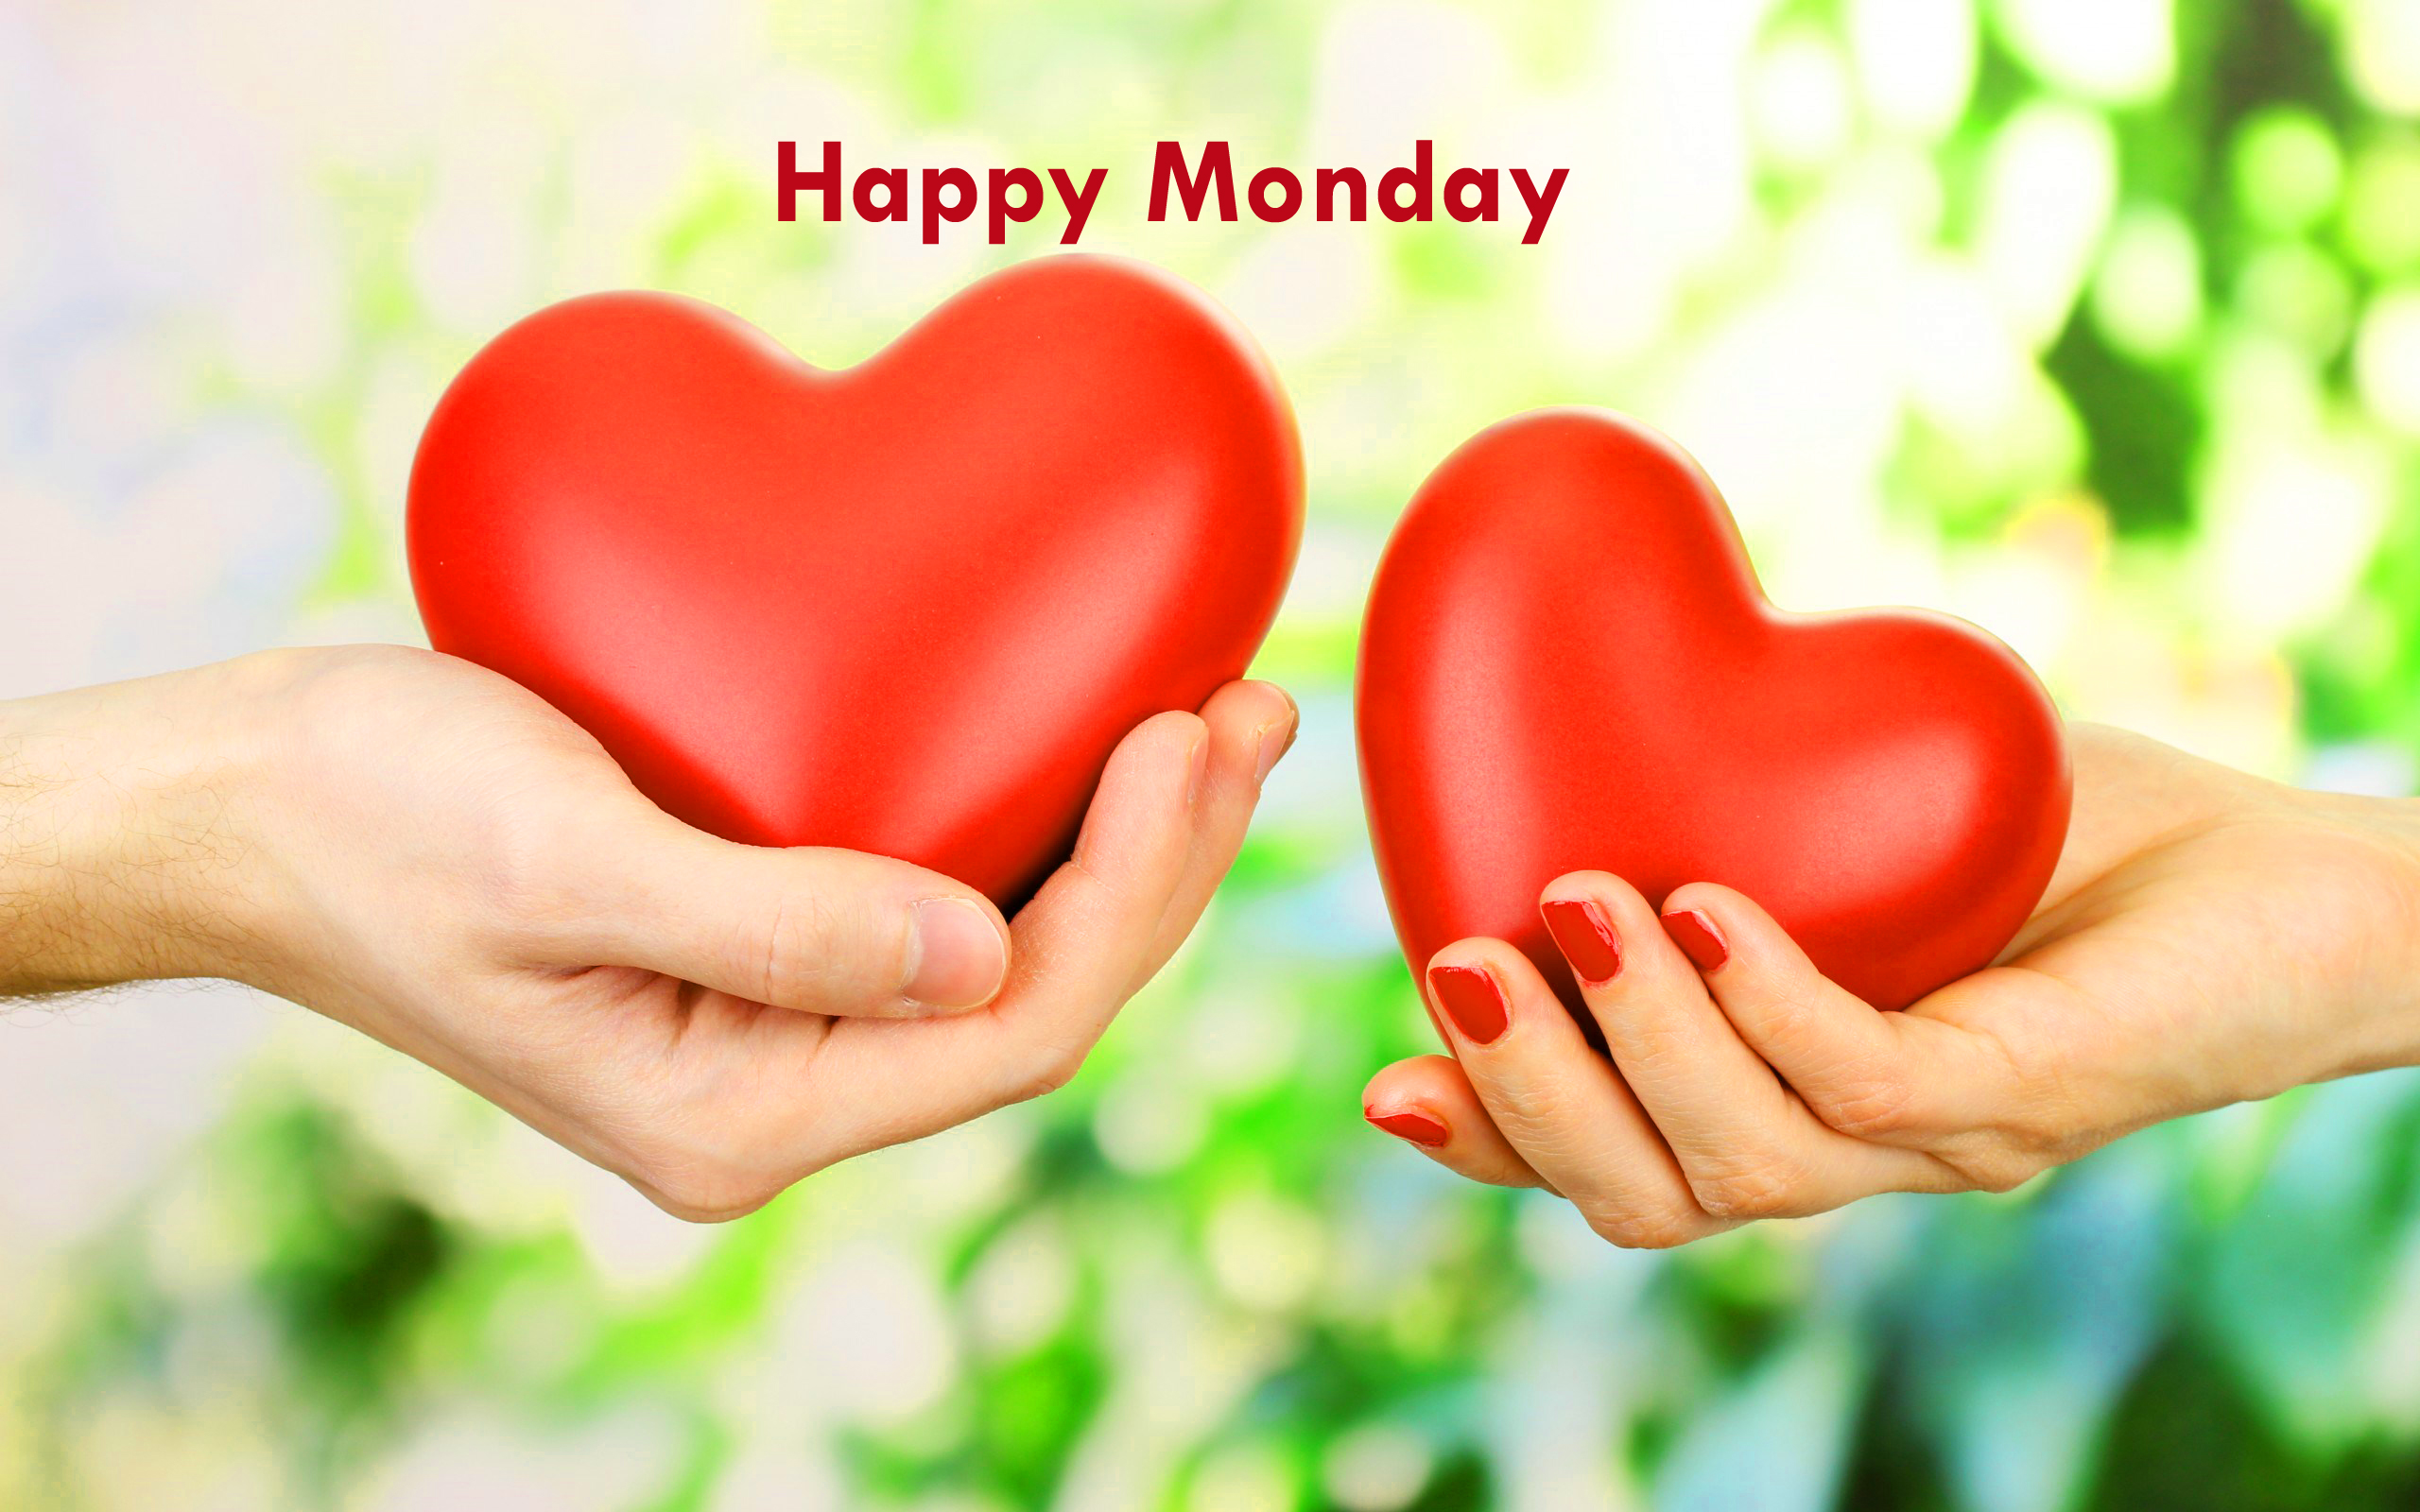 Wallpaper Love Goodmorning Monday Good Morning Images